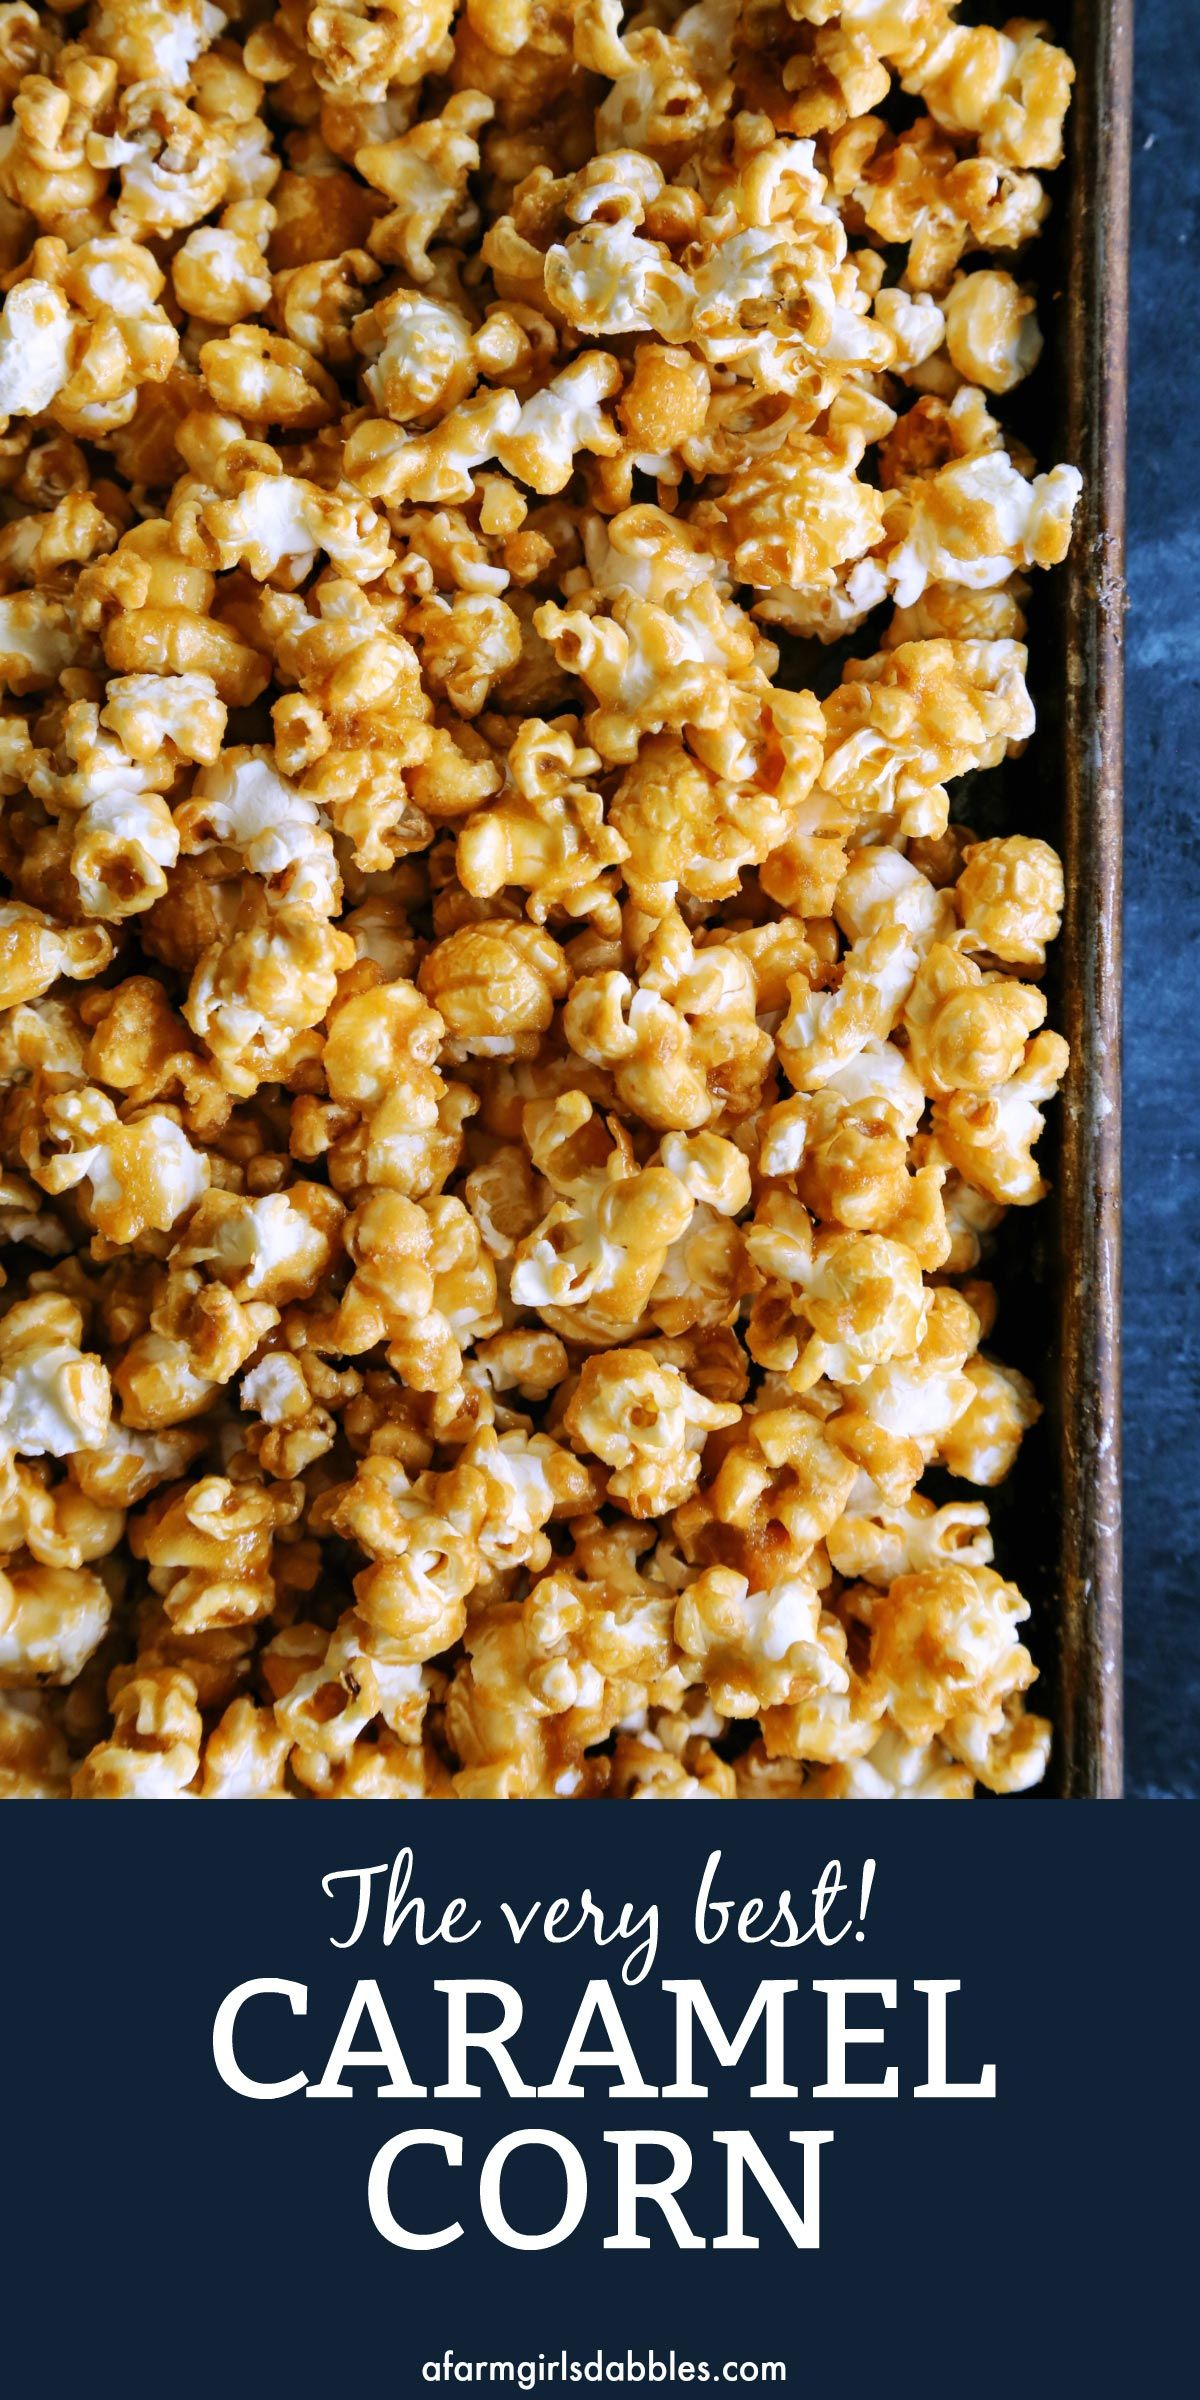 Oven-Baked Caramel Corn: So much better than store-bought!